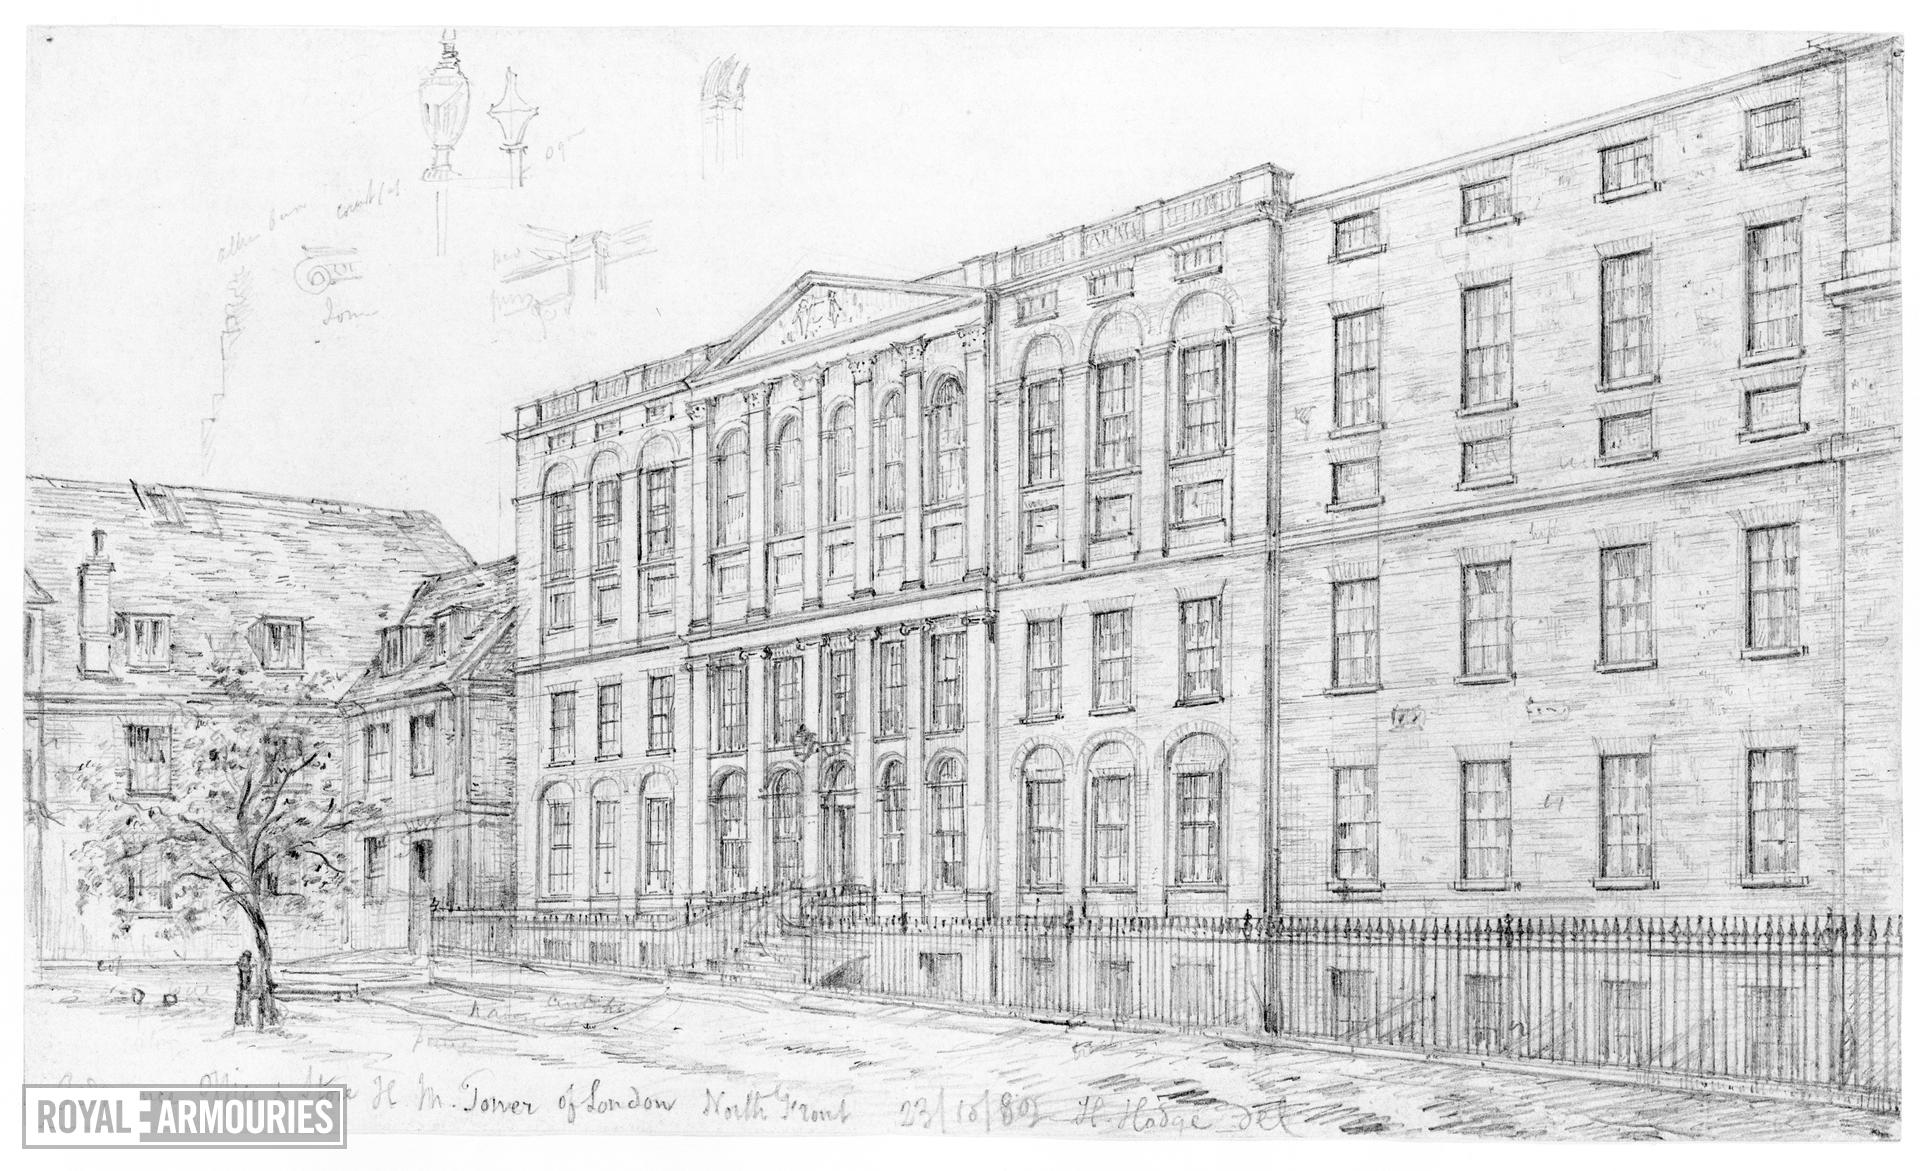 Drawing THE ORDNANCE OFFICE FROM THE NORTH AND THE OLD HORSE ARMOURY